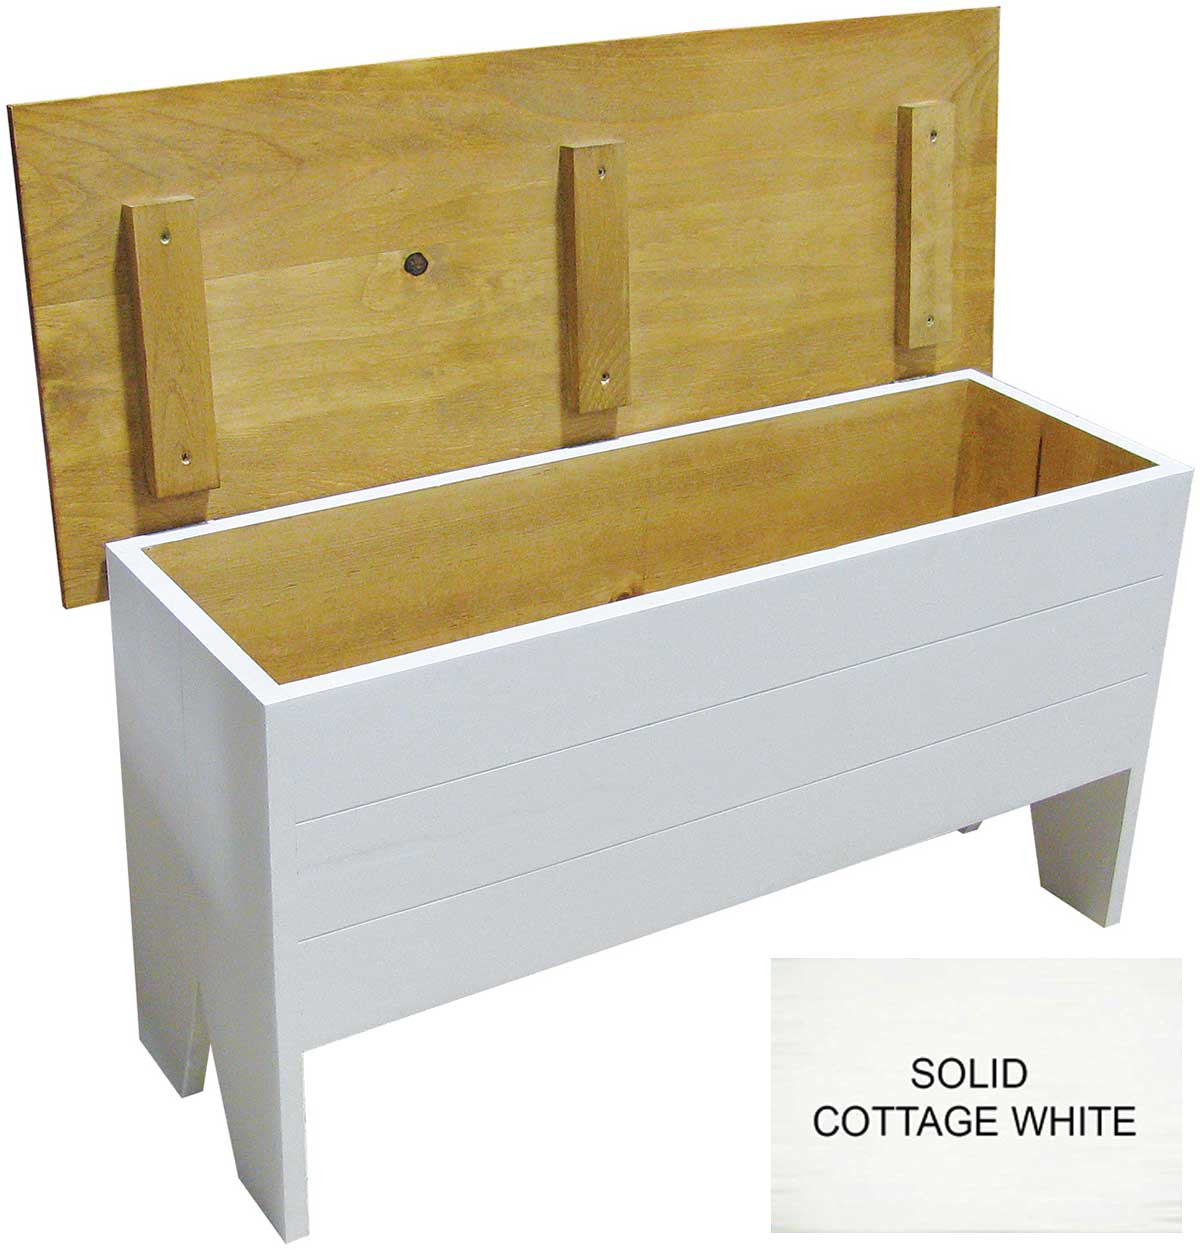 Superieur Shown In Solid Cottage White